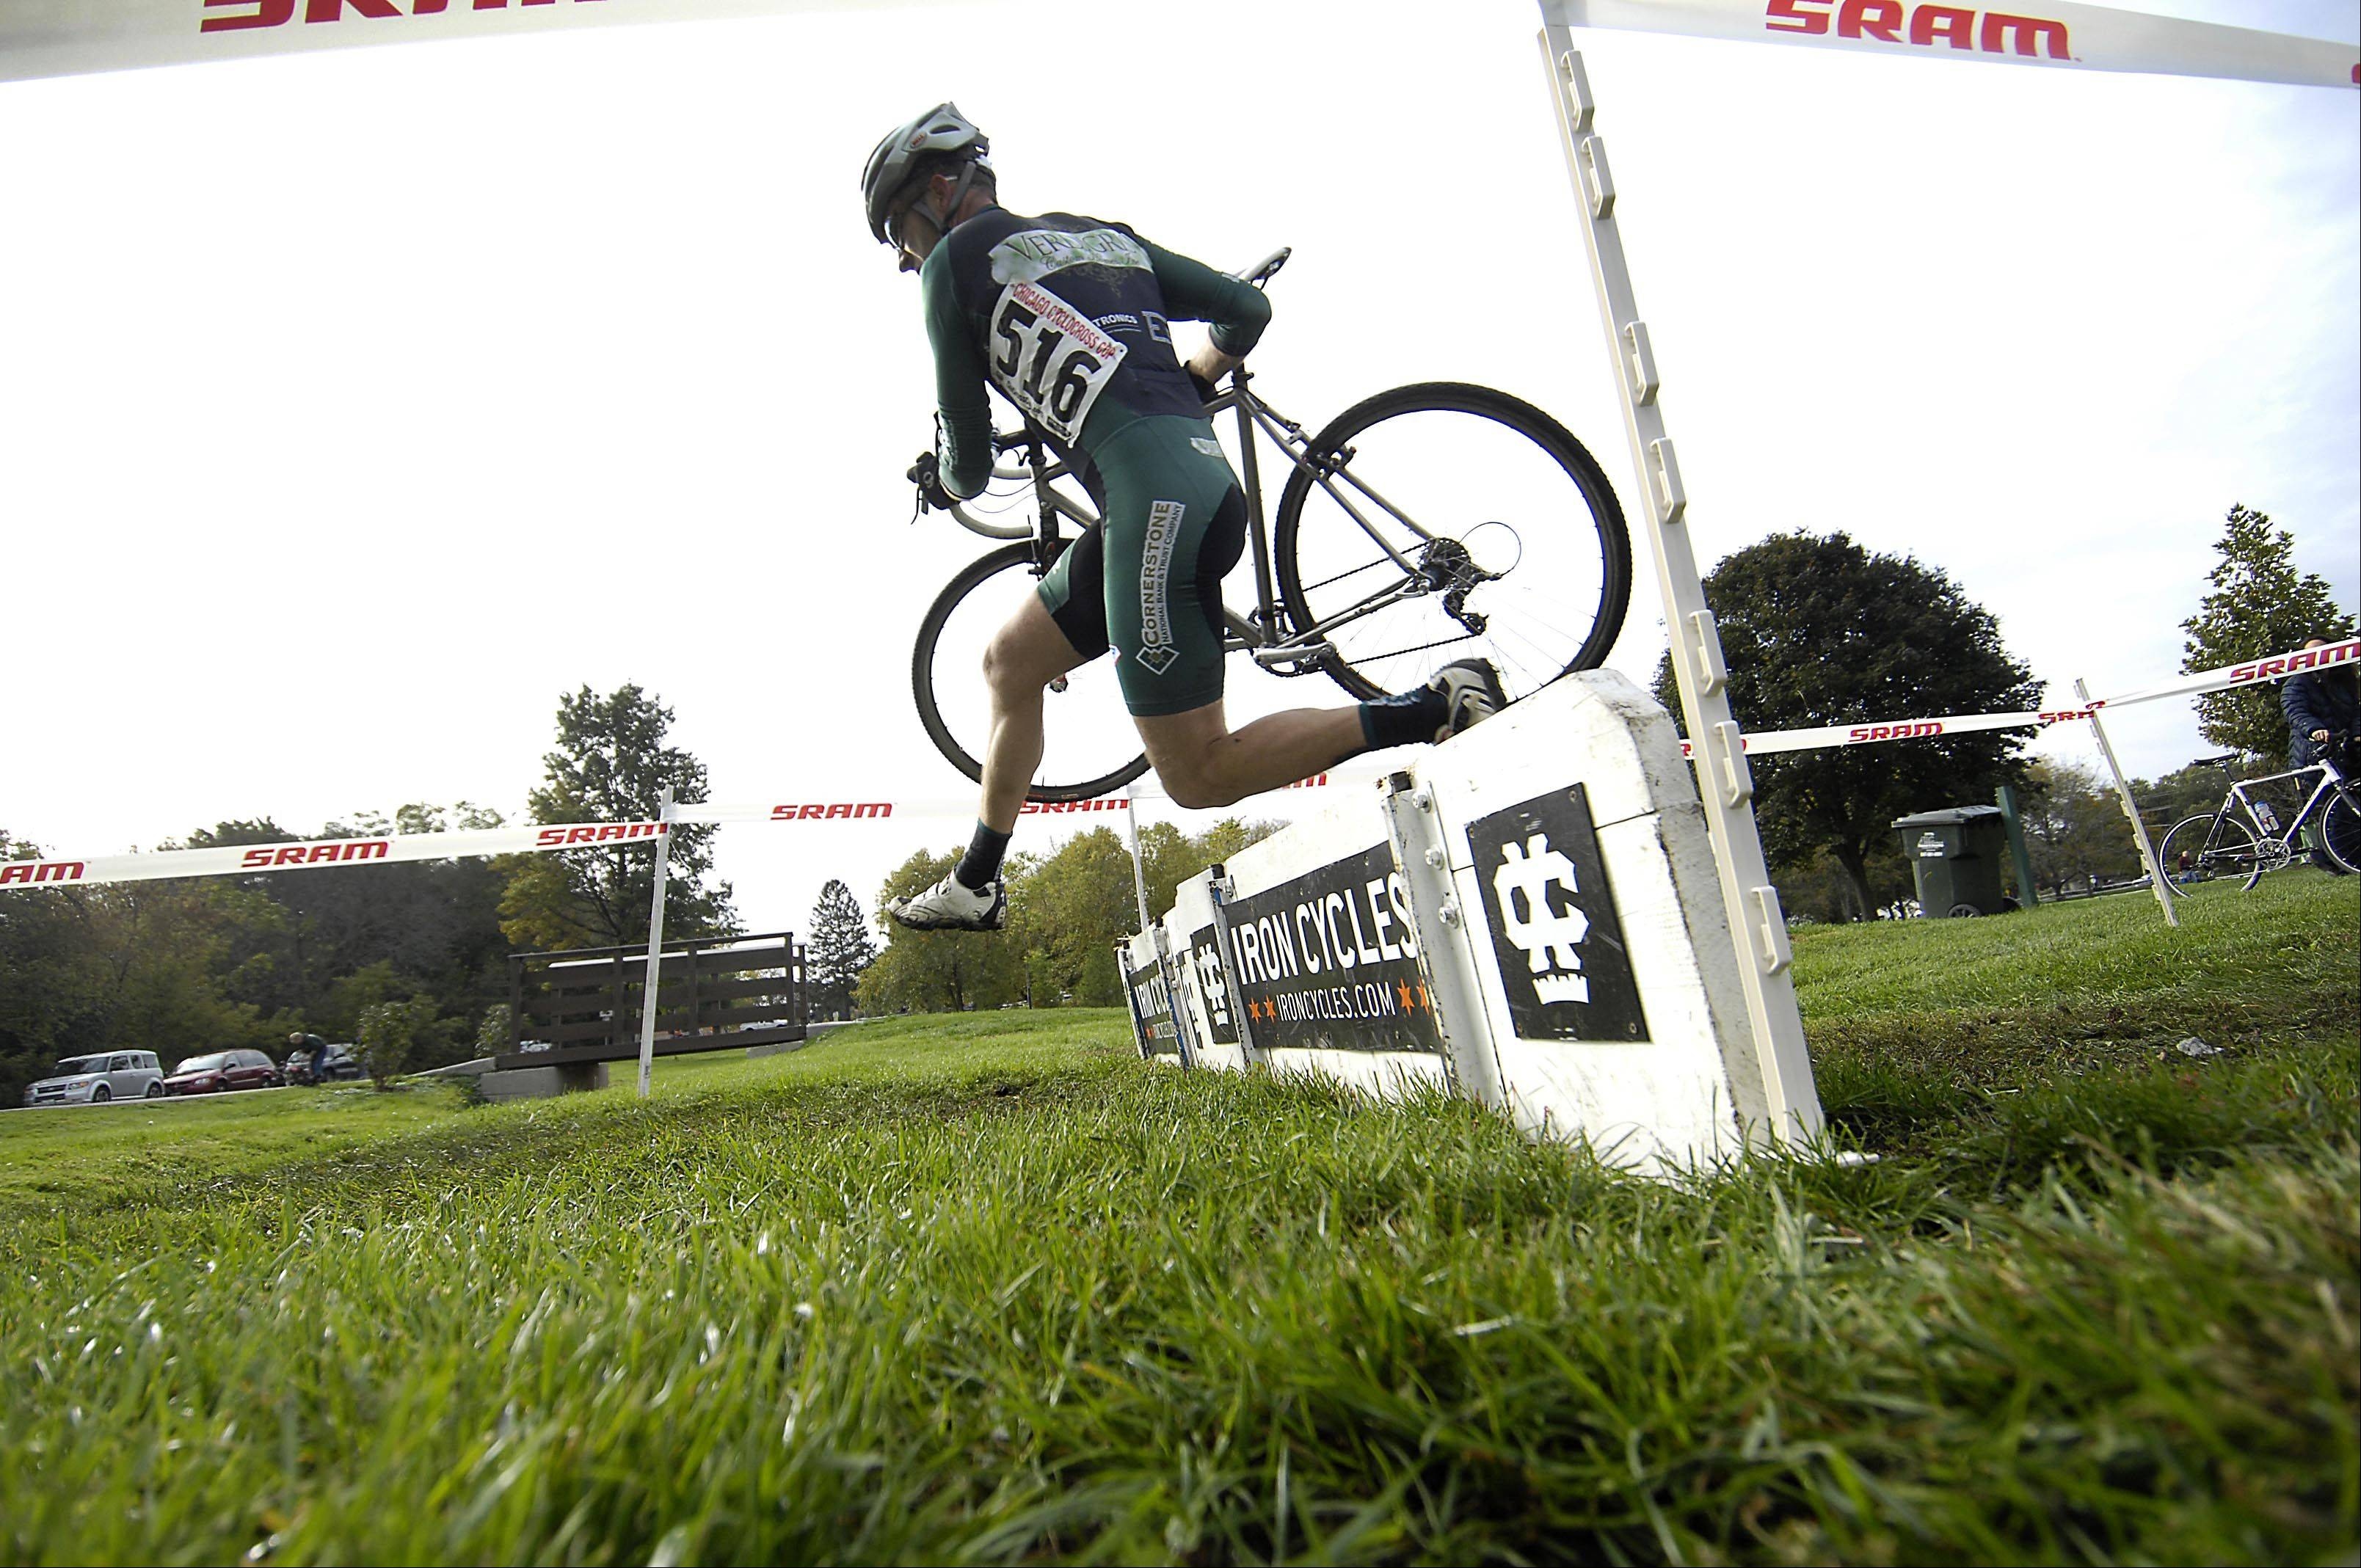 Brian Dougherty, 41, of Elgin, leaps over an obstacle Sunday at the Carpentersville Oktoberfest and Chicago Cyclocross Cup bicycle races at Carpenter Park. More than 600 racers competed in the off-road race during the day. Races last 45 minutes.